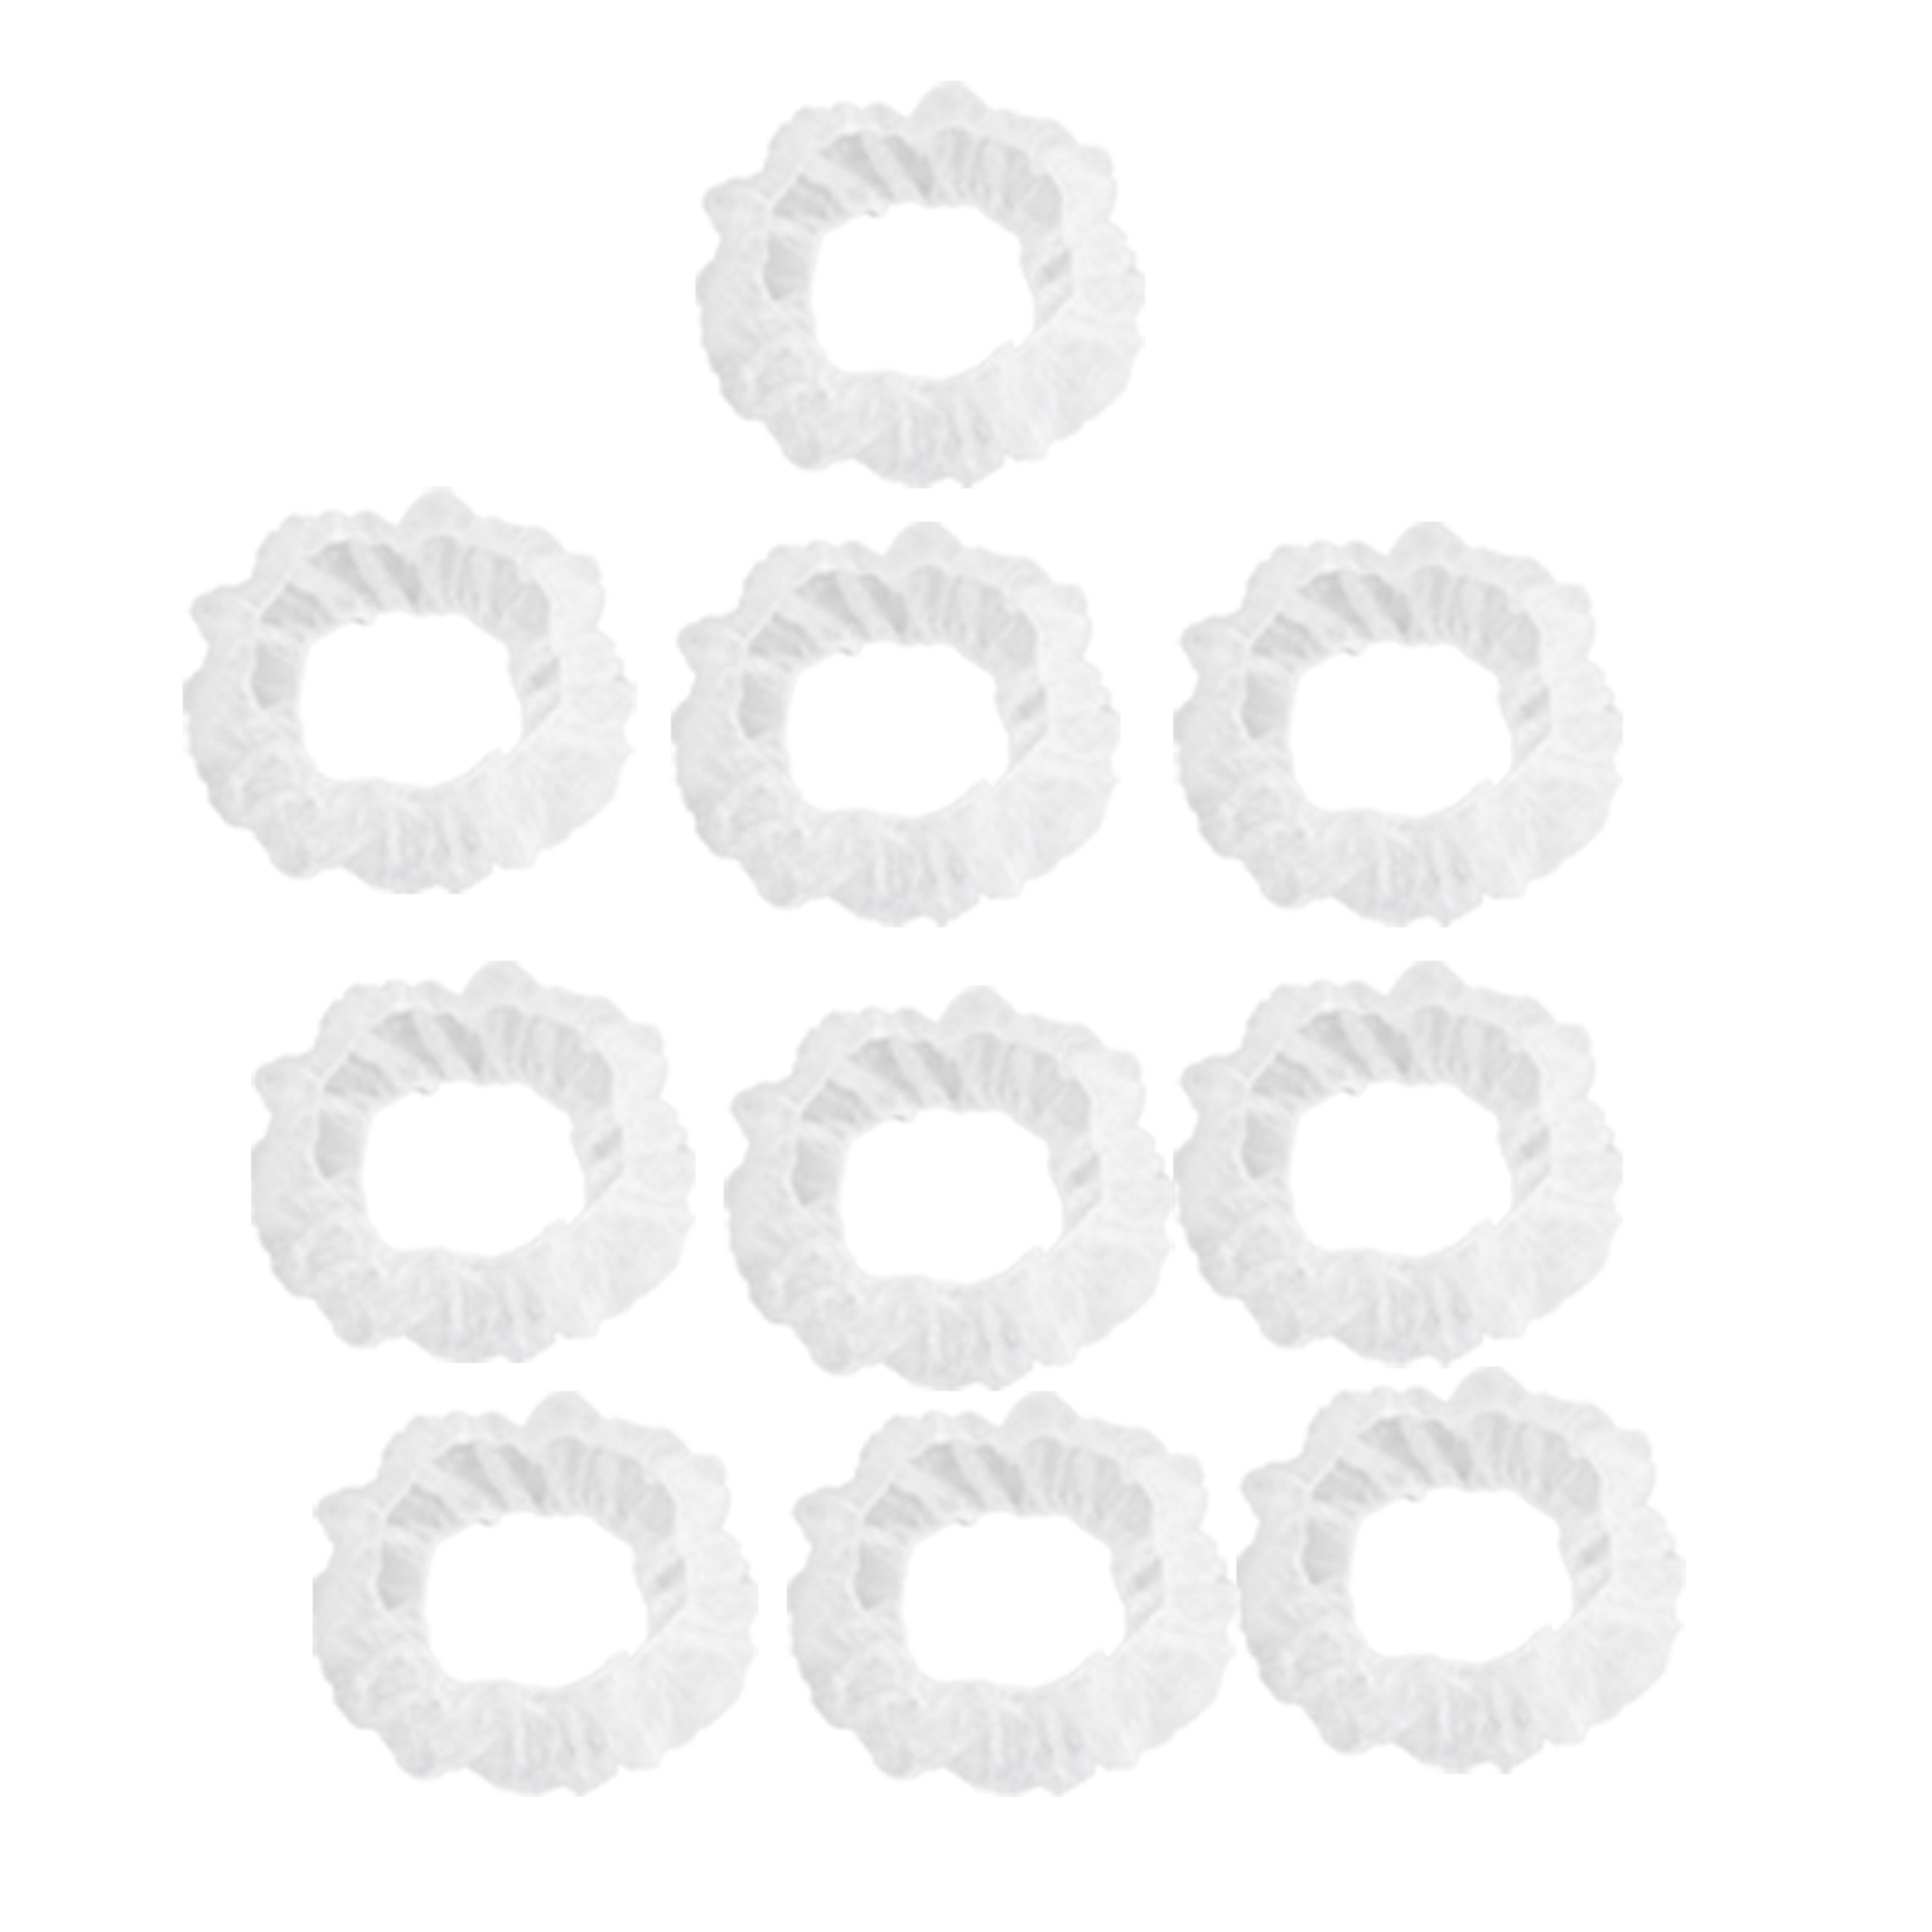 10 Pcs Clear White Plastic Disposable Steering Wheel Cover for Car